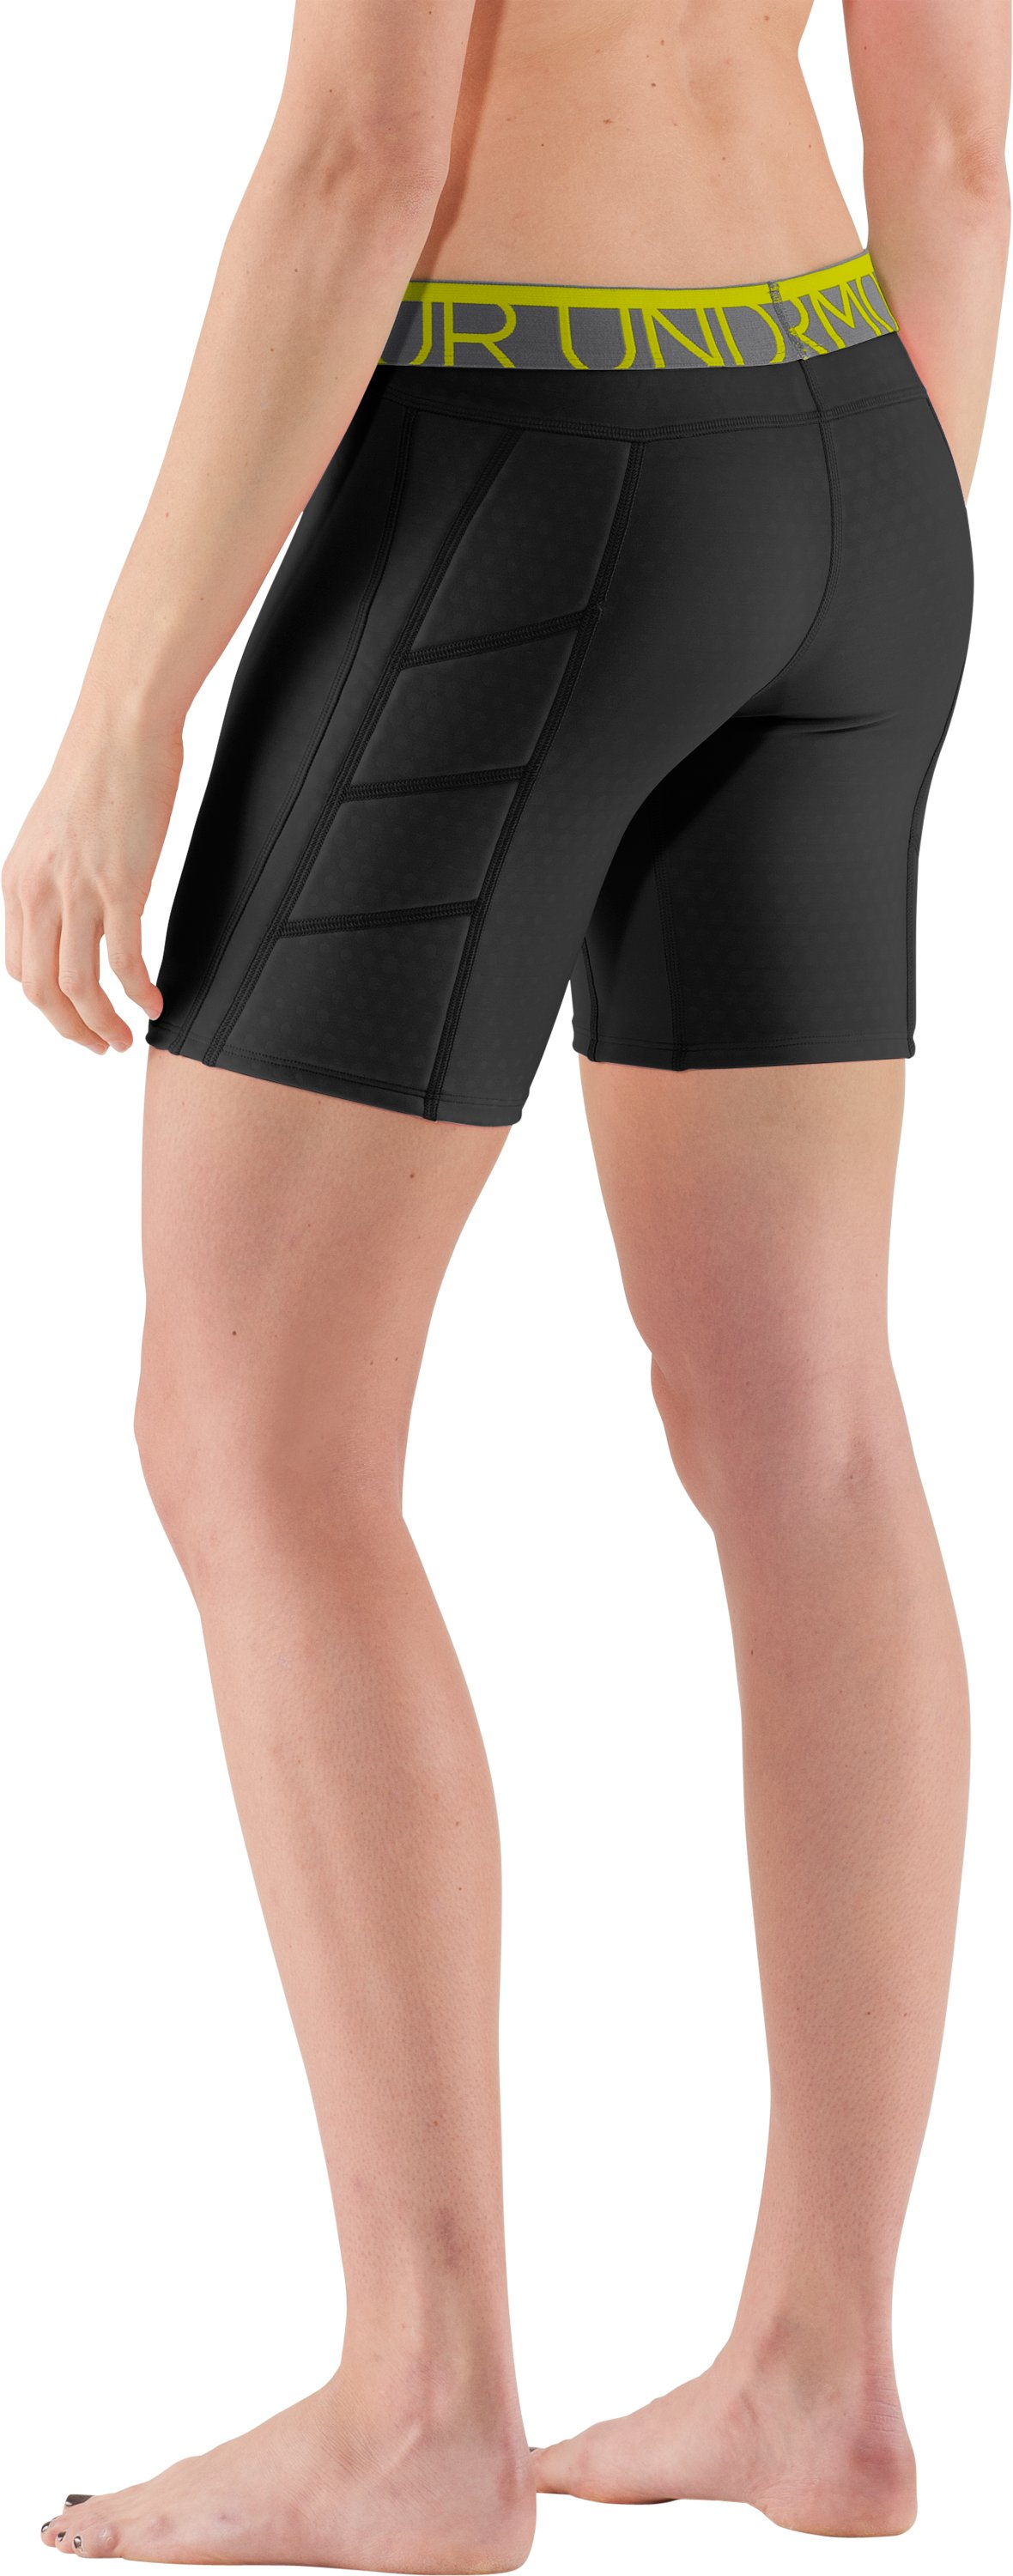 Women's MPZ® Strike Zone Shorts, Black